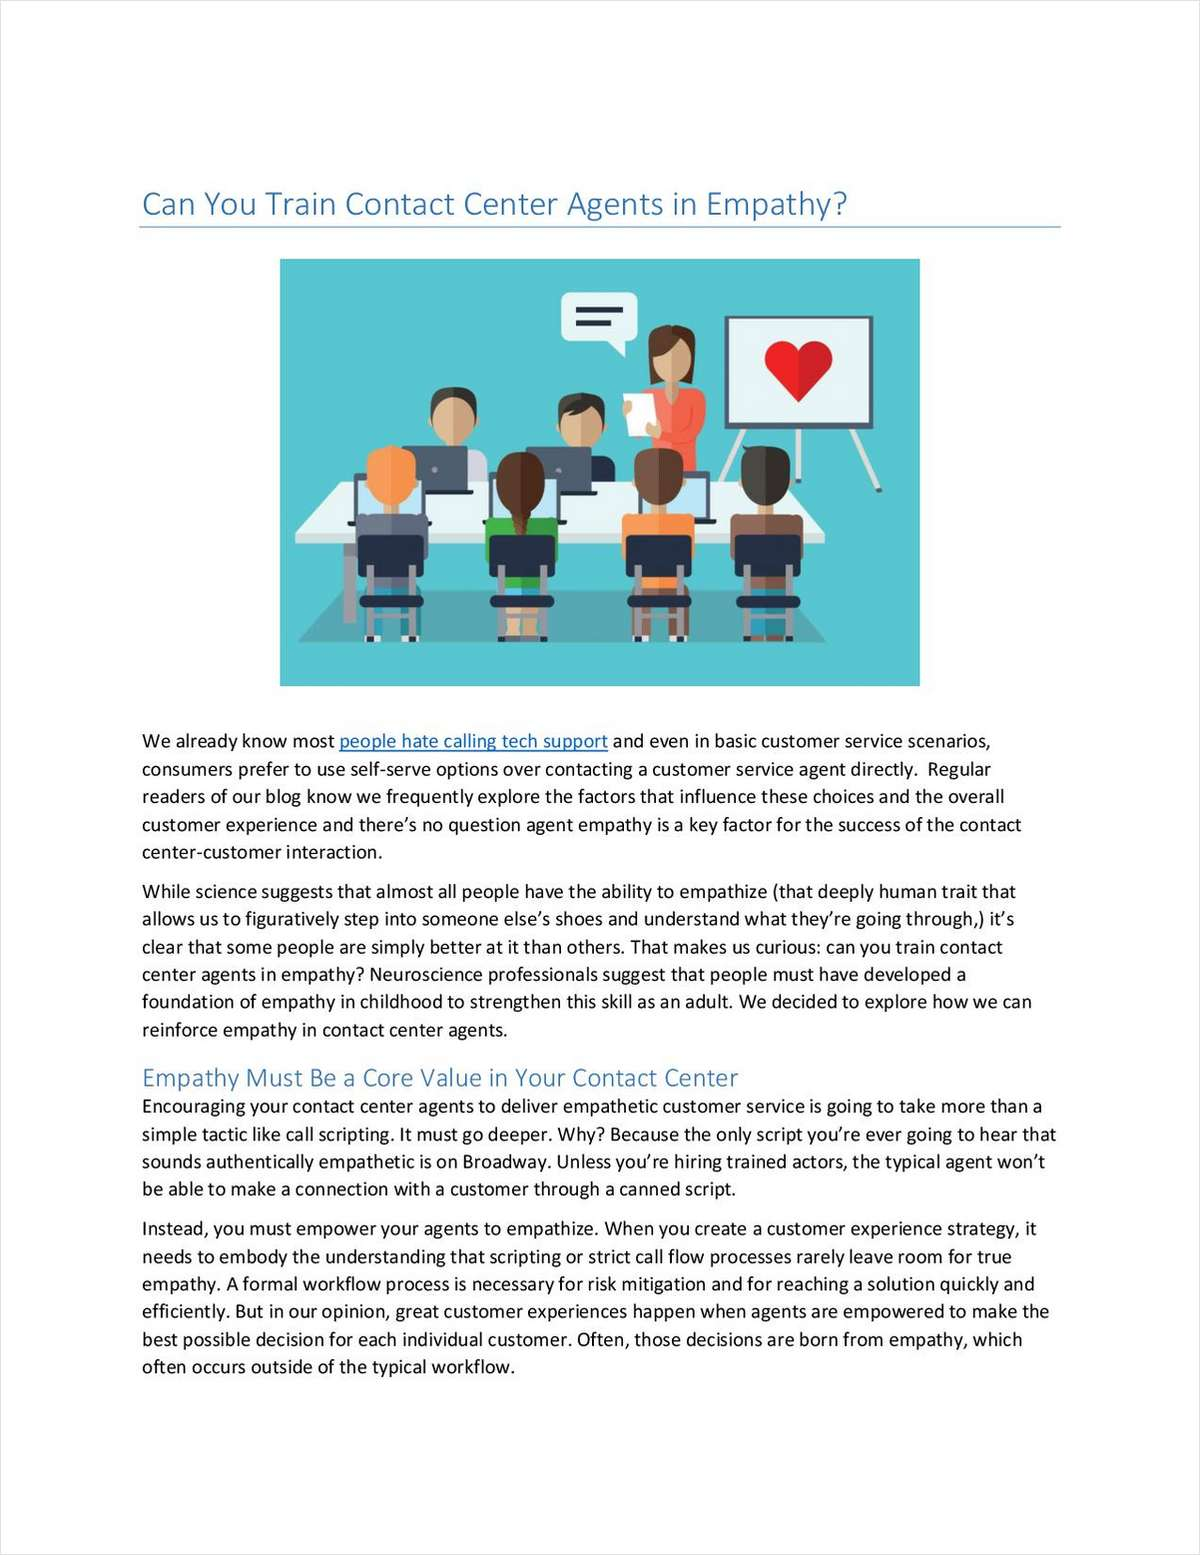 Can You Train Contact Center Agents in Empathy?